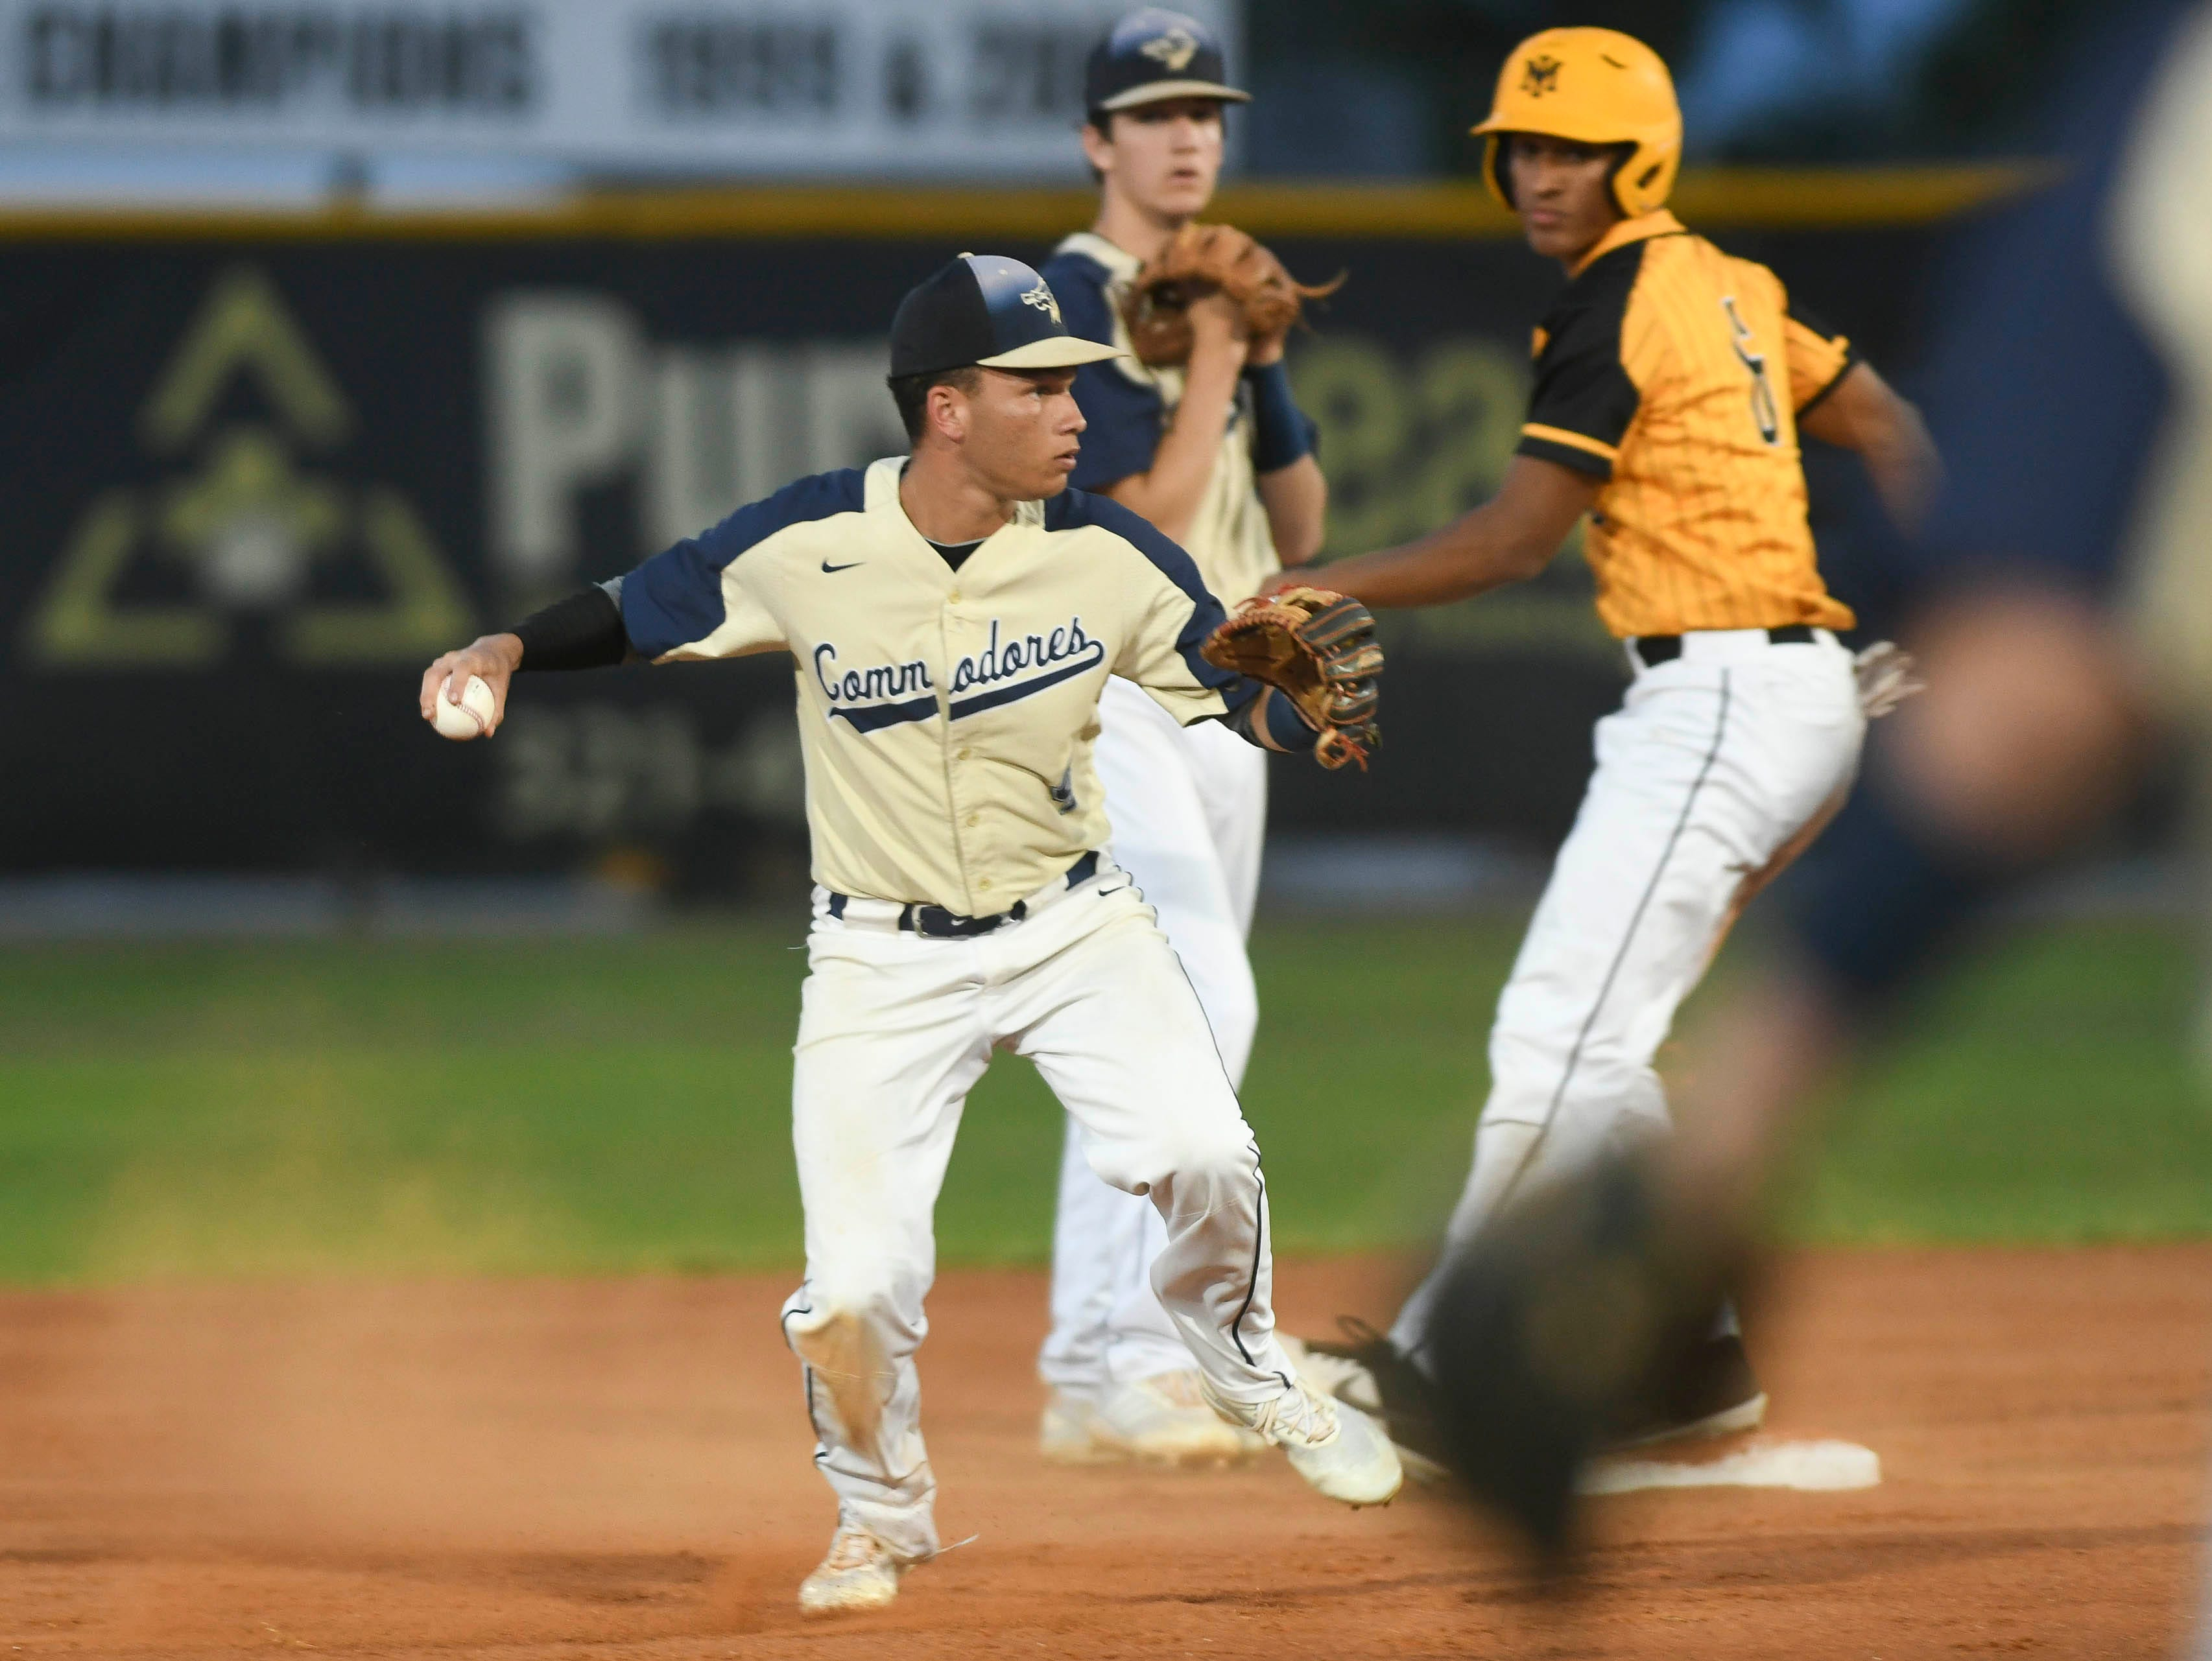 Luis Merced of Eau Gallie looks to make a play during Tuesday's game in Merritt Island